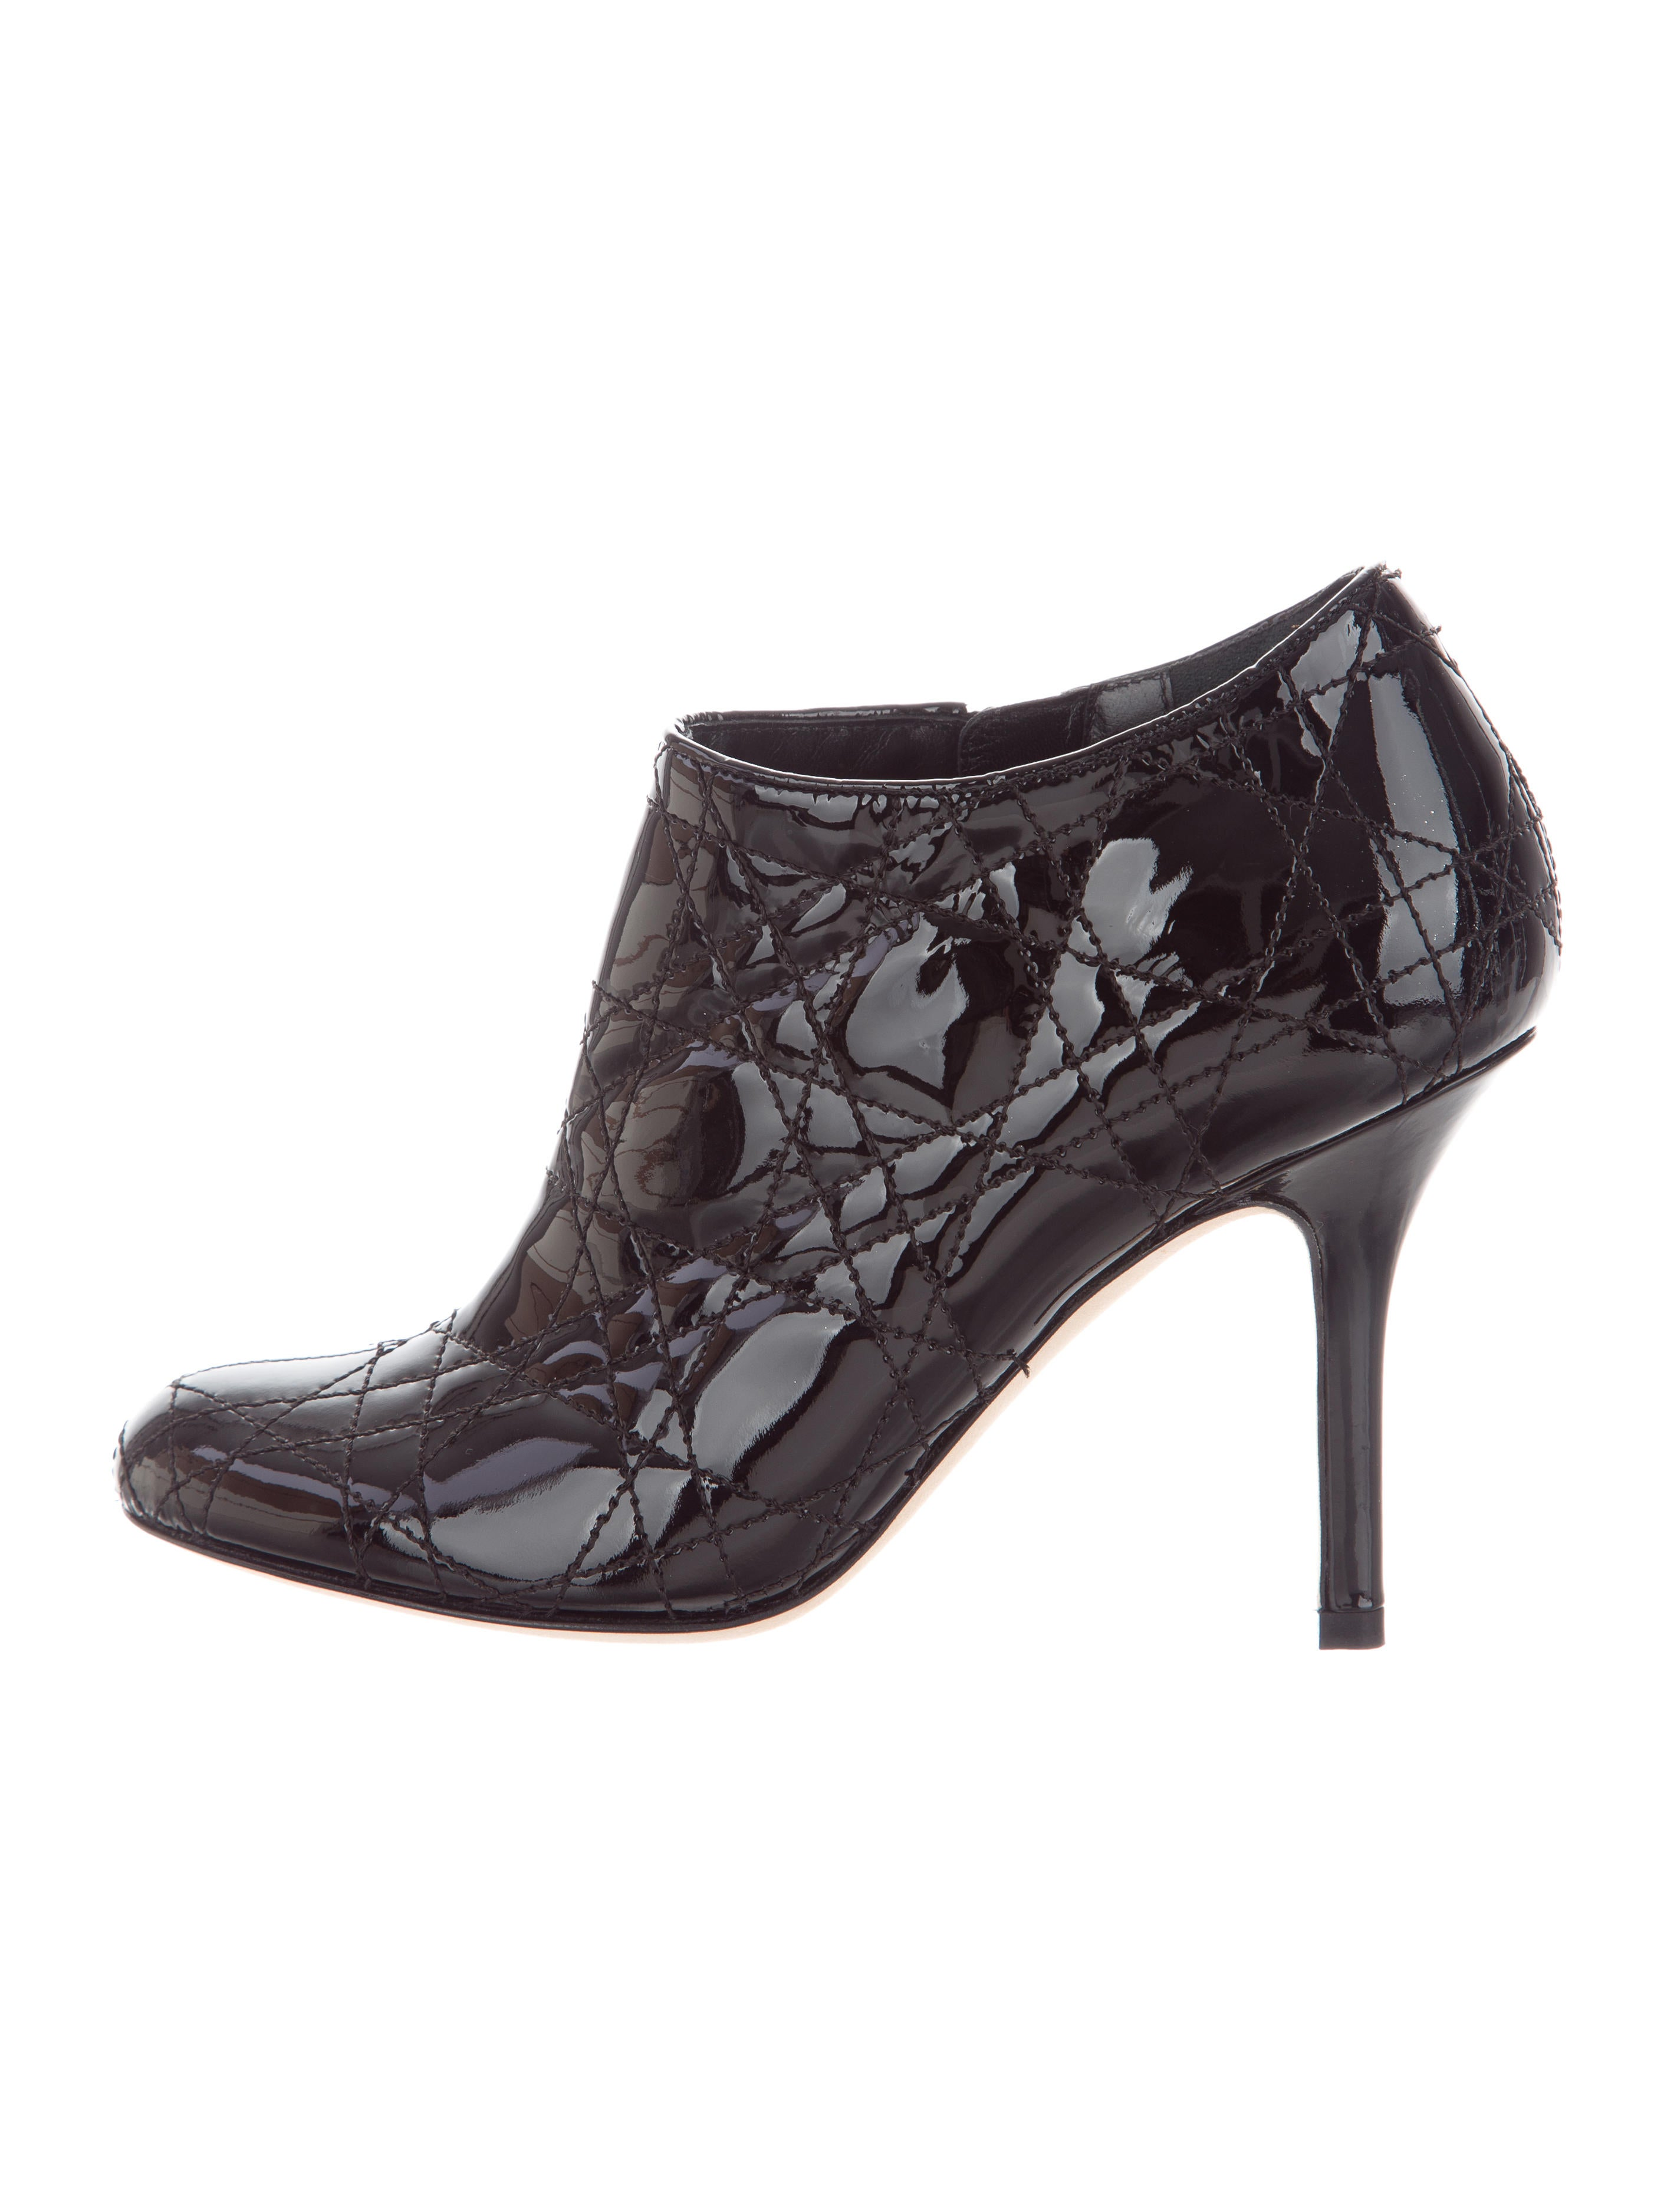 Christian Dior Cannage Patent Leather Boots cheap price discount in China cheapest price sale official cheap sale 100% authentic xGmIWA